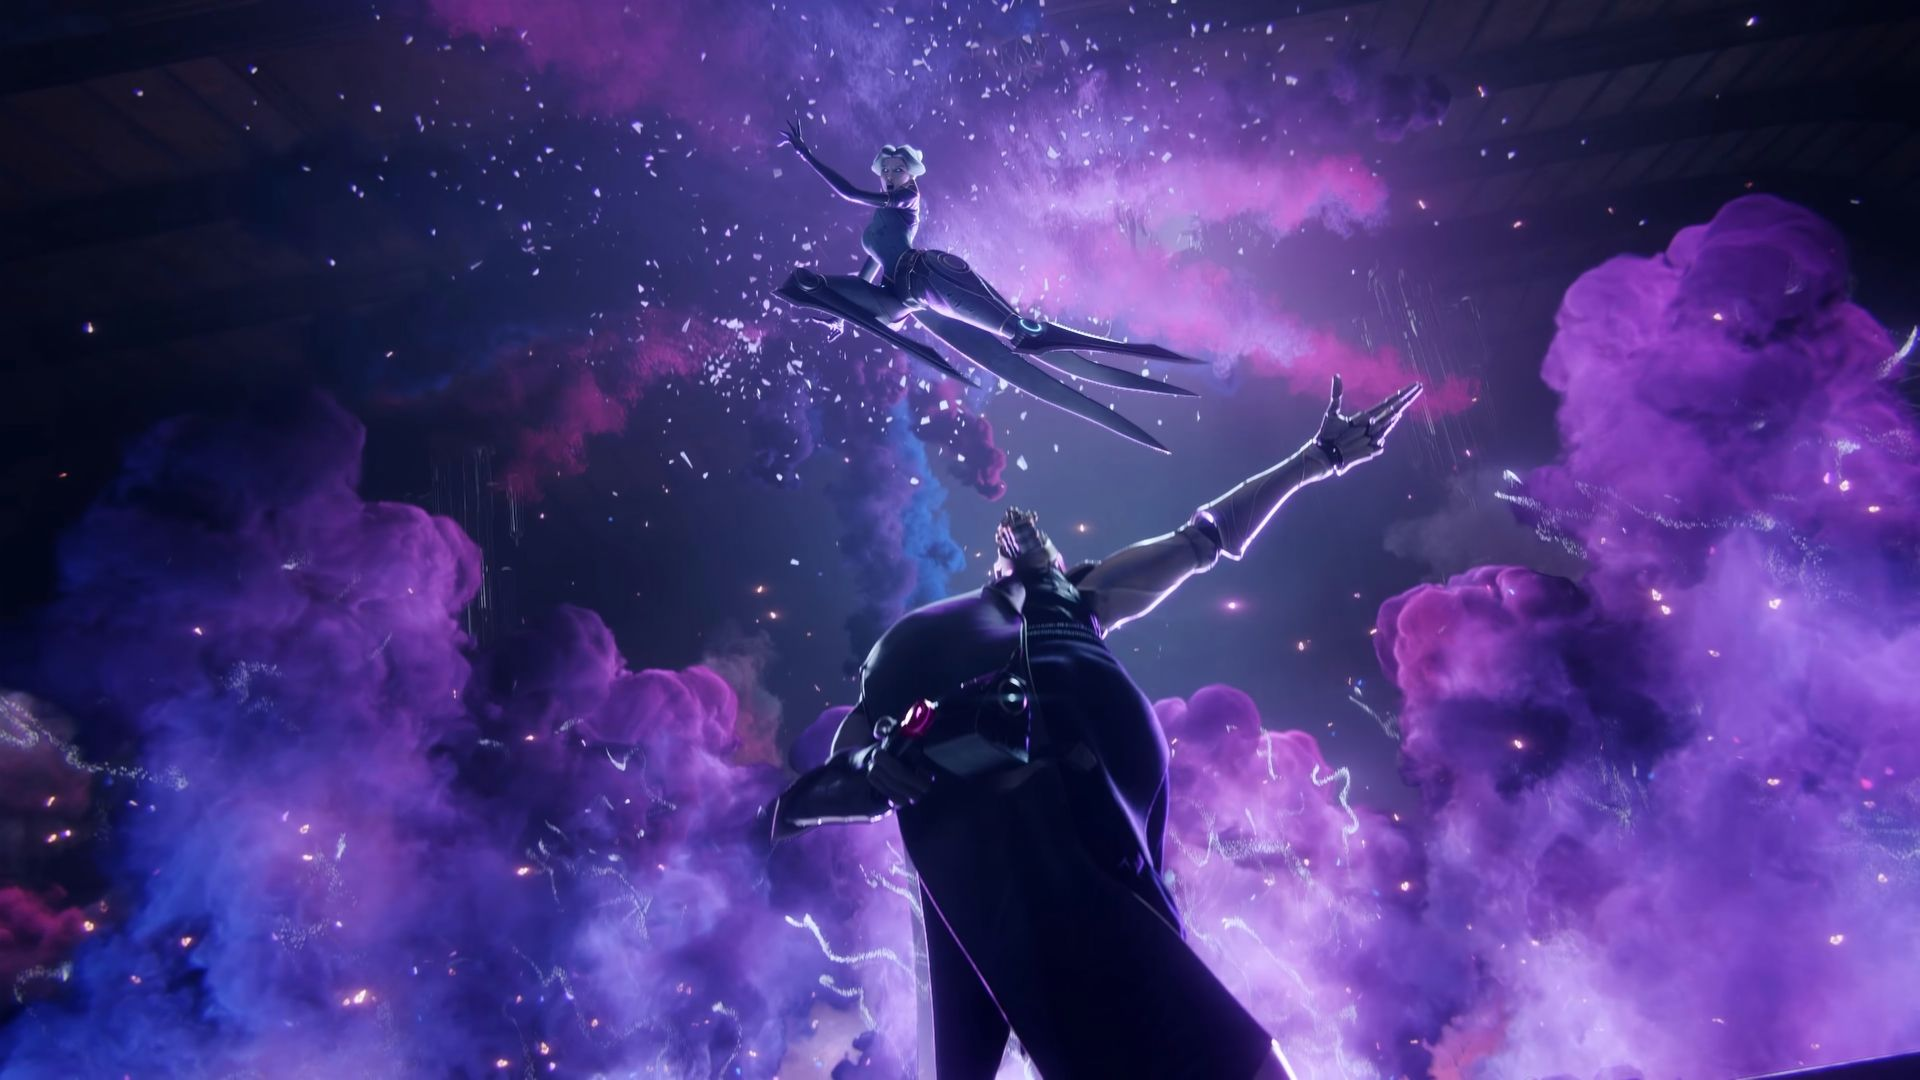 15360x8640 Jhin Camille Wallpaper Background Image View Download Comment And Rate Wallpa League Of Legends Jhin Lol League Of Legends League Of Legends